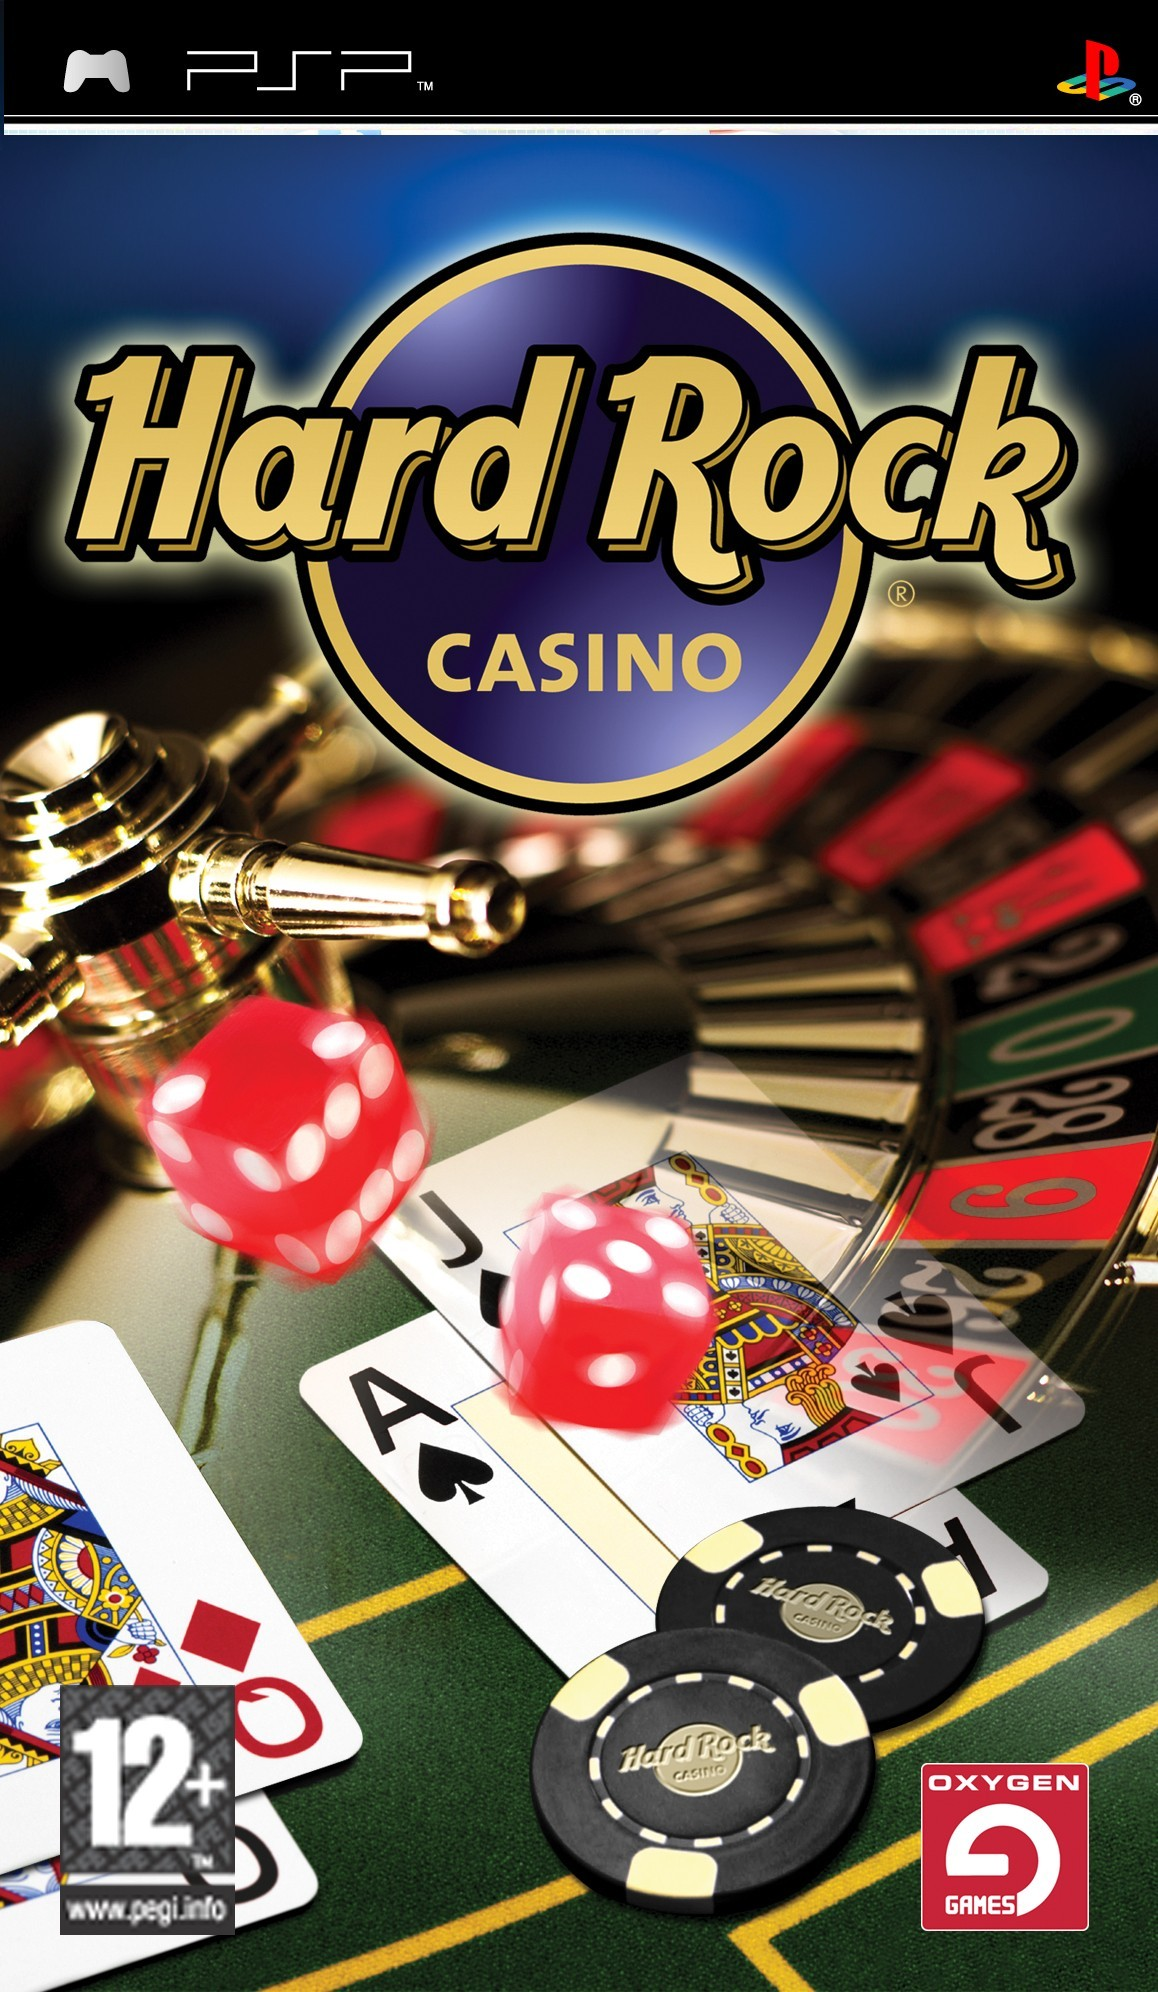 Hard casino have gambling casinos